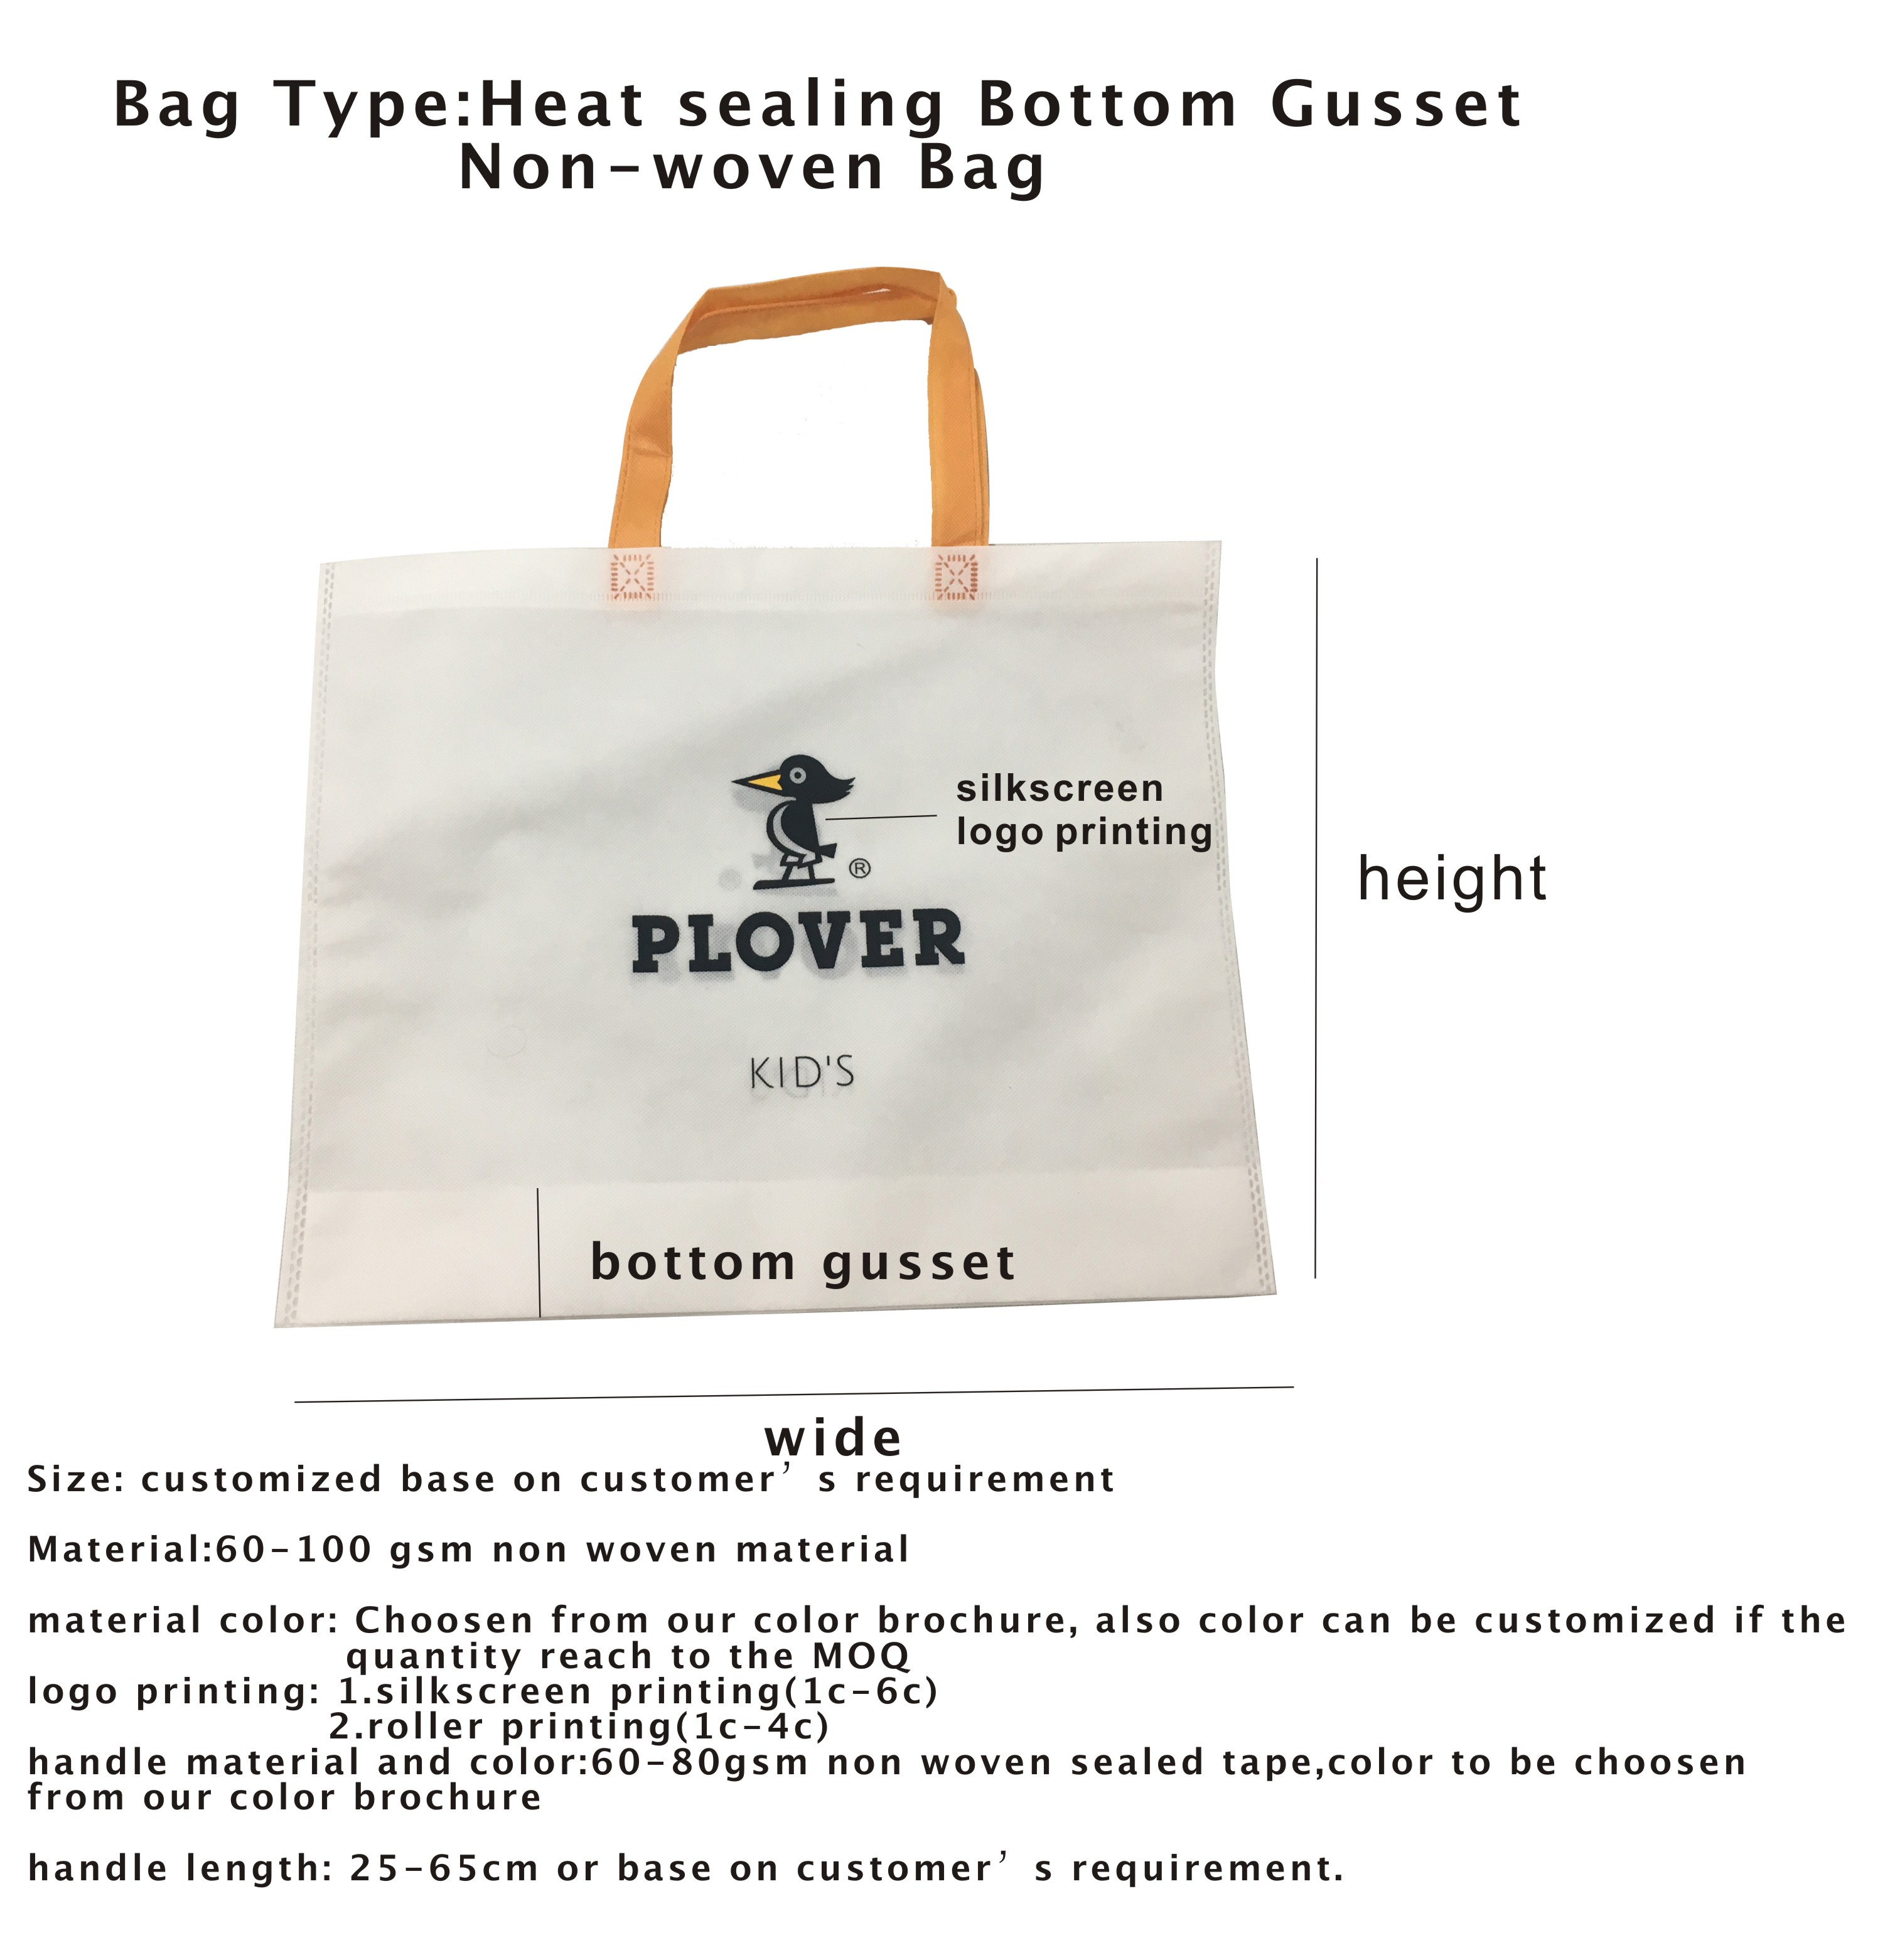 heat sealing non woven bag bottom gusset with die cut handle